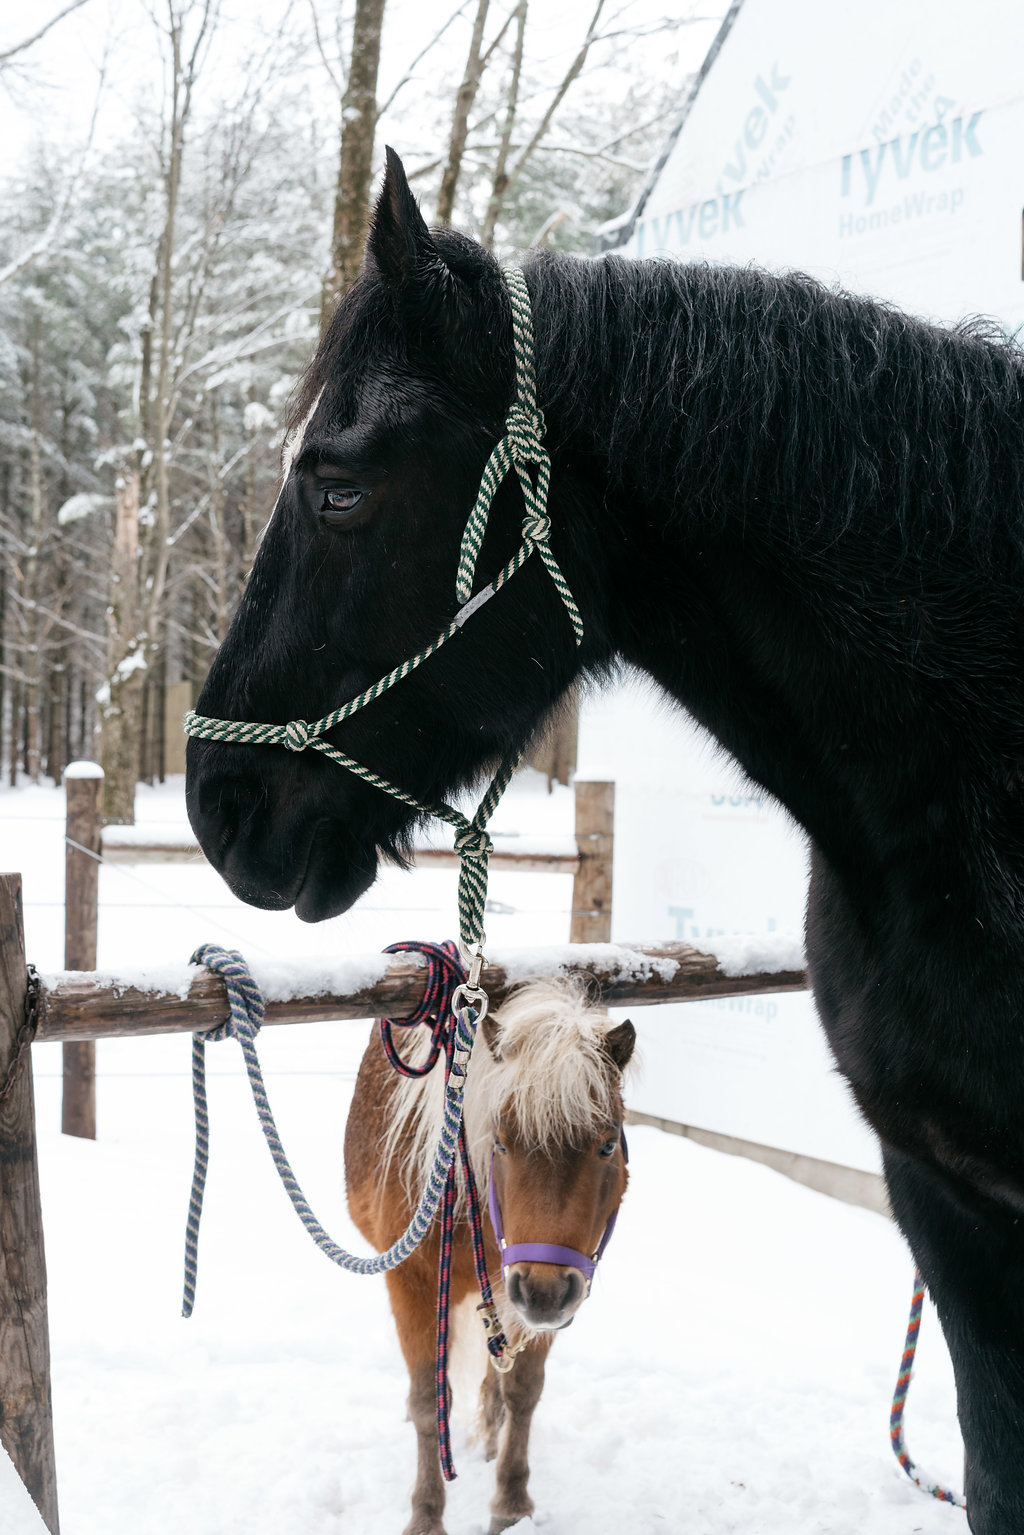 PURE member Darcel McDonald's horses outside of Darcel's home in Wausau, Wisconsin.